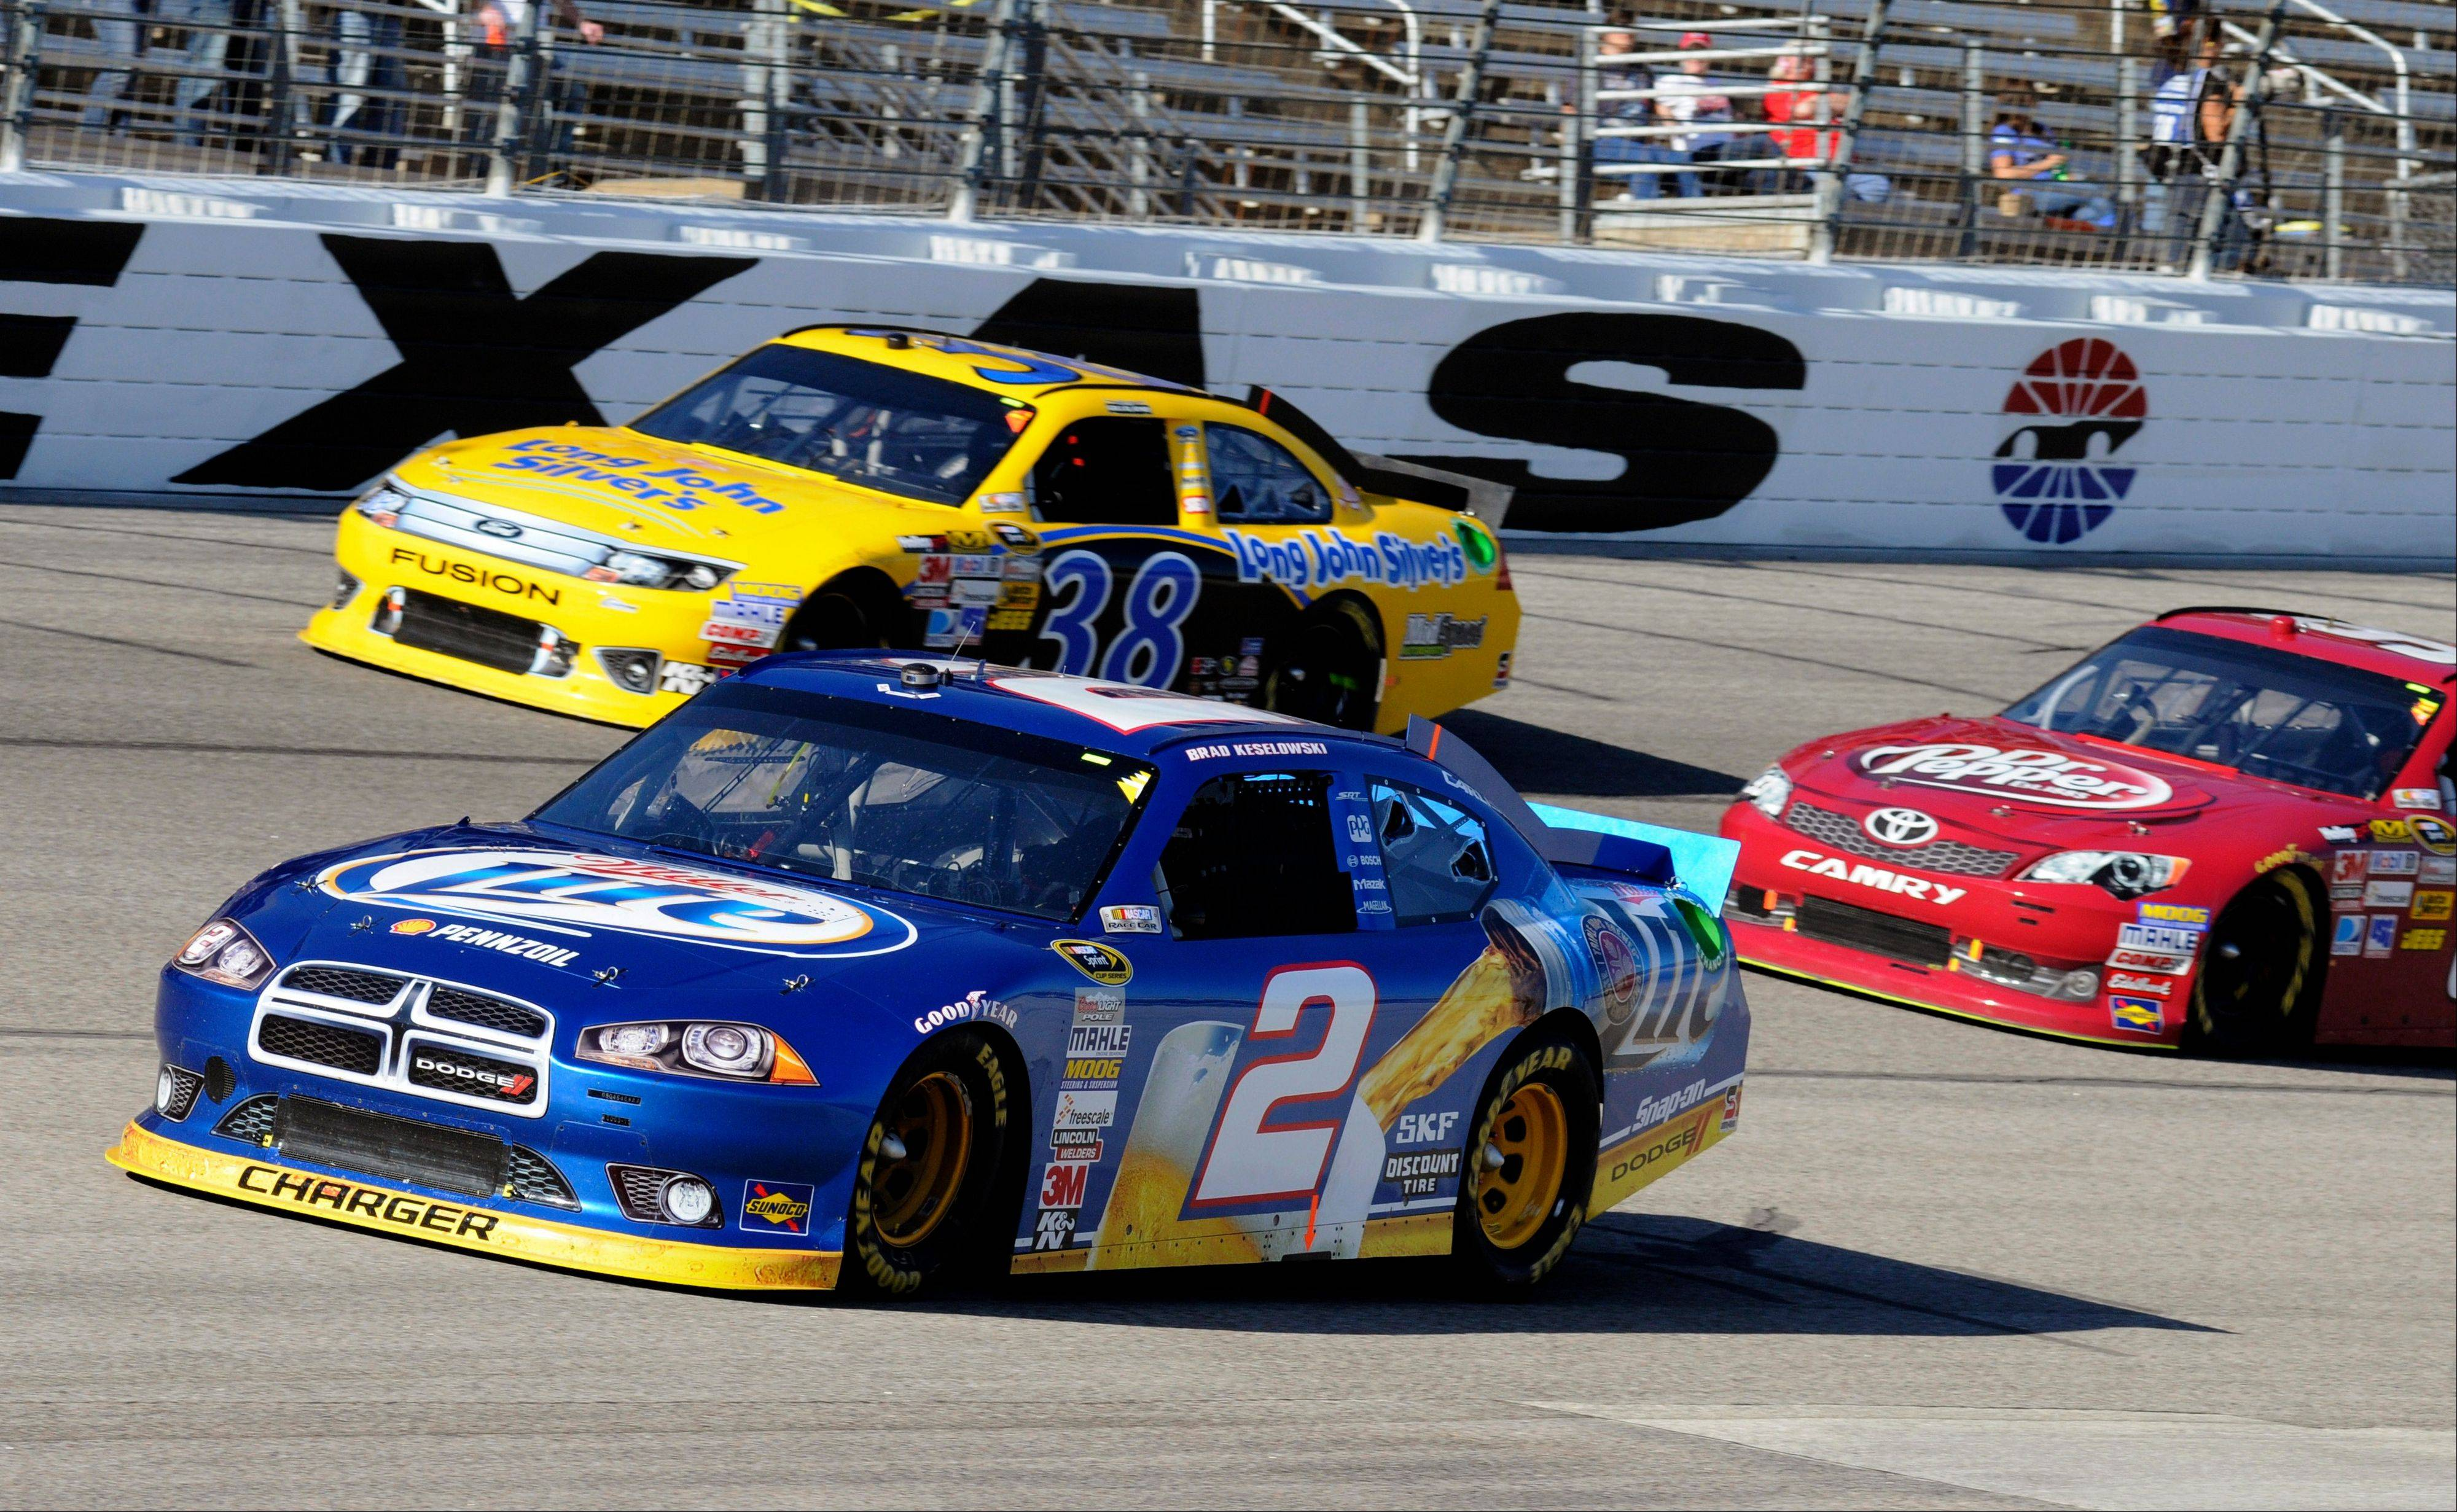 Brad Keselowski (2) comes out of Turn 4 in front of David Gilliland (38) and Travis Kvapil, right, Sunday during the NASCAR Sprint Cup Series race in Fort Worth, Texas.